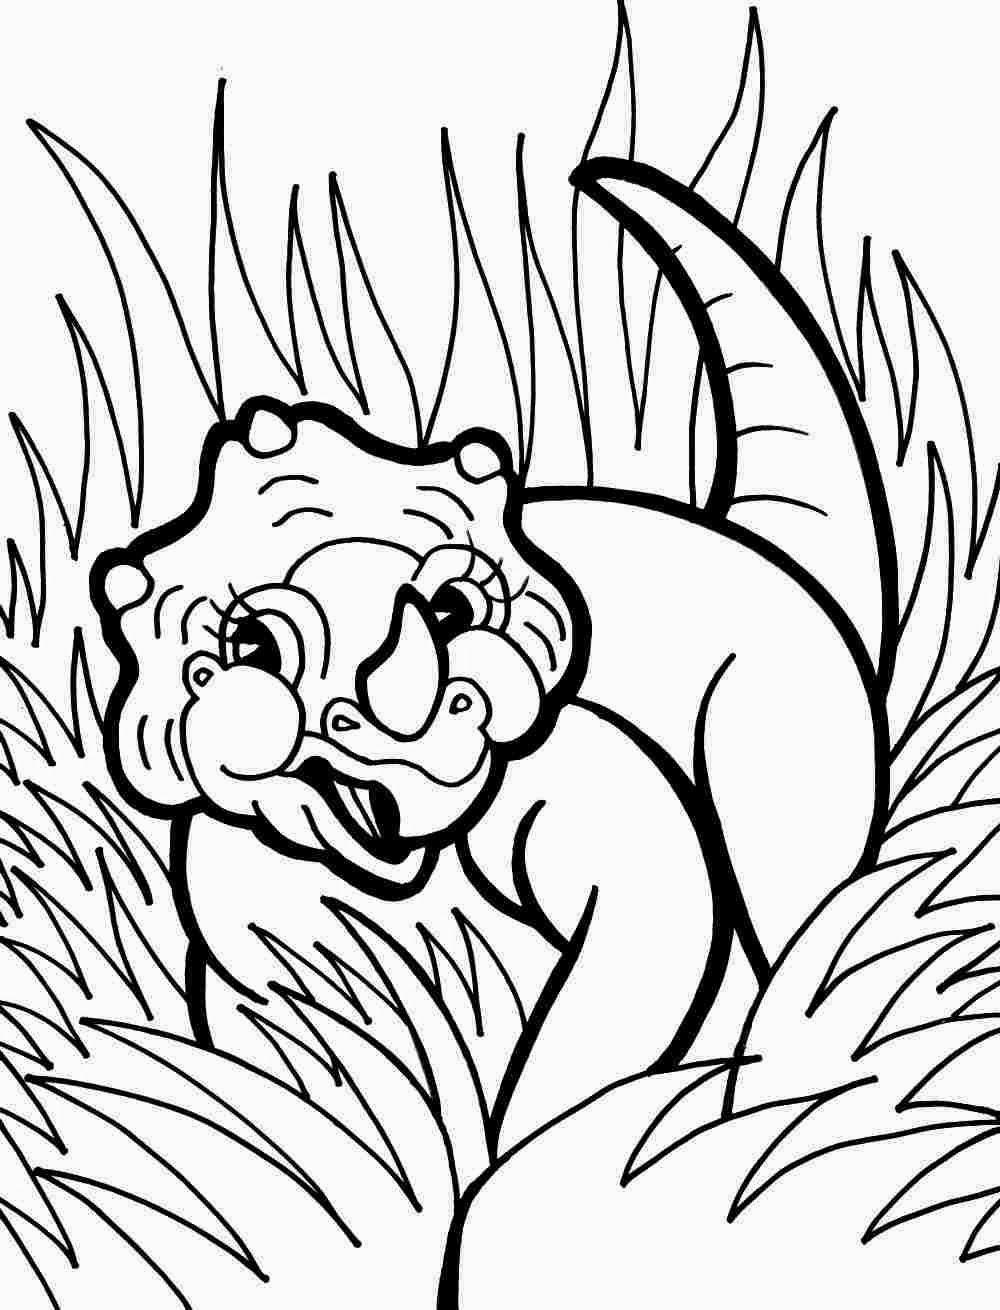 free printable dinosaur coloring pages coloring pages dinosaur free printable coloring pages coloring free pages printable dinosaur